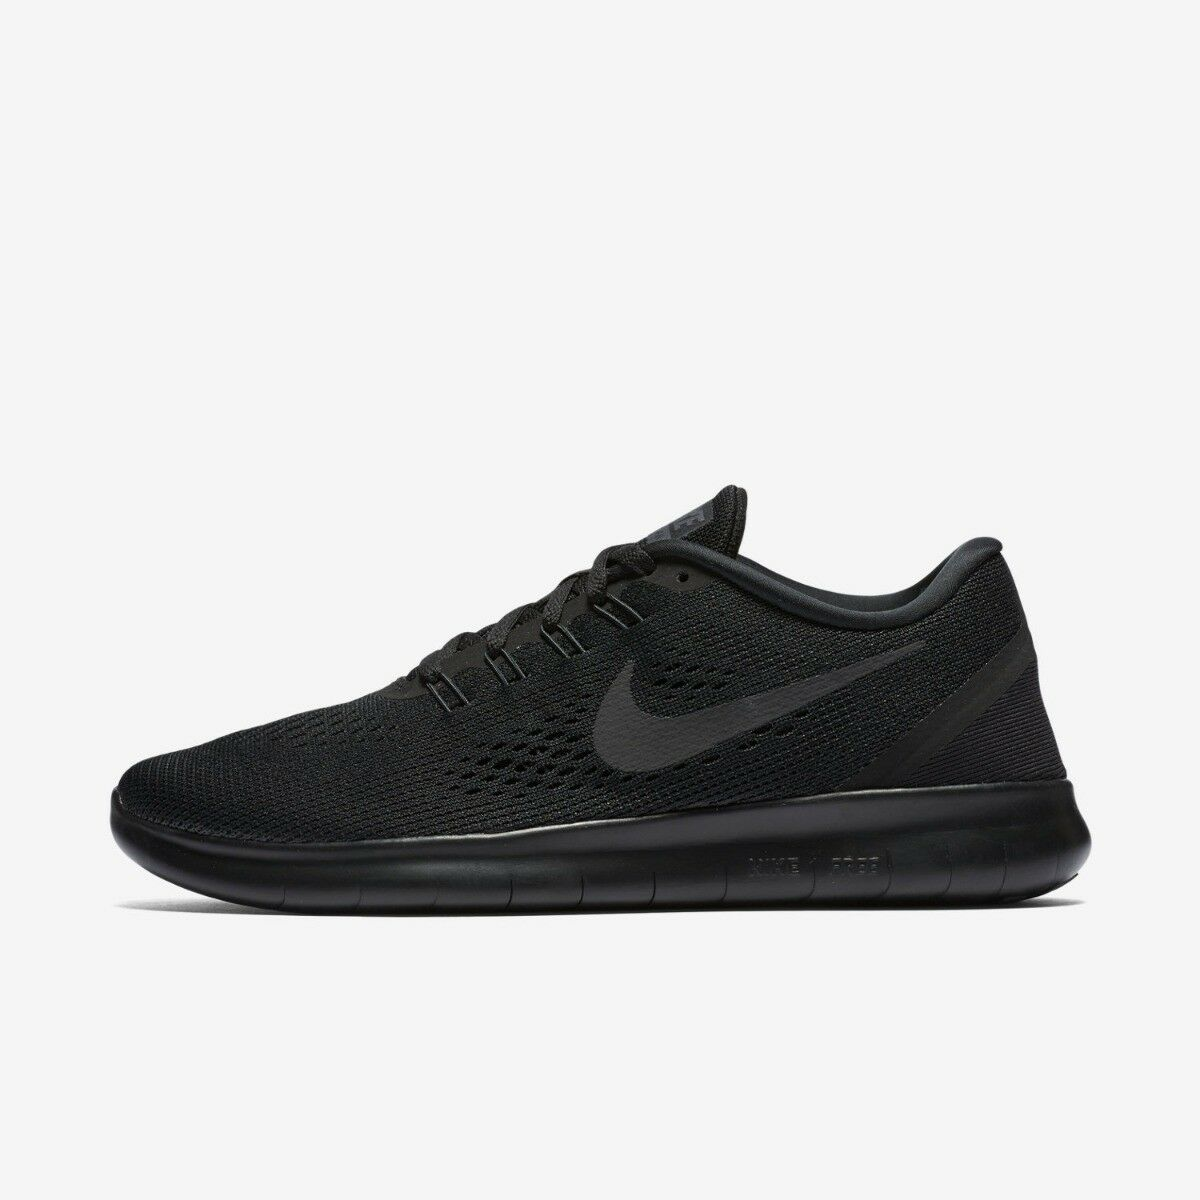 Zapatos promocionales para hombres y mujeres NIKE FREE RUN RUNNING TRAINER SHOE WOMENS SIZE 4 BLACK NIGHT FACTOR 90